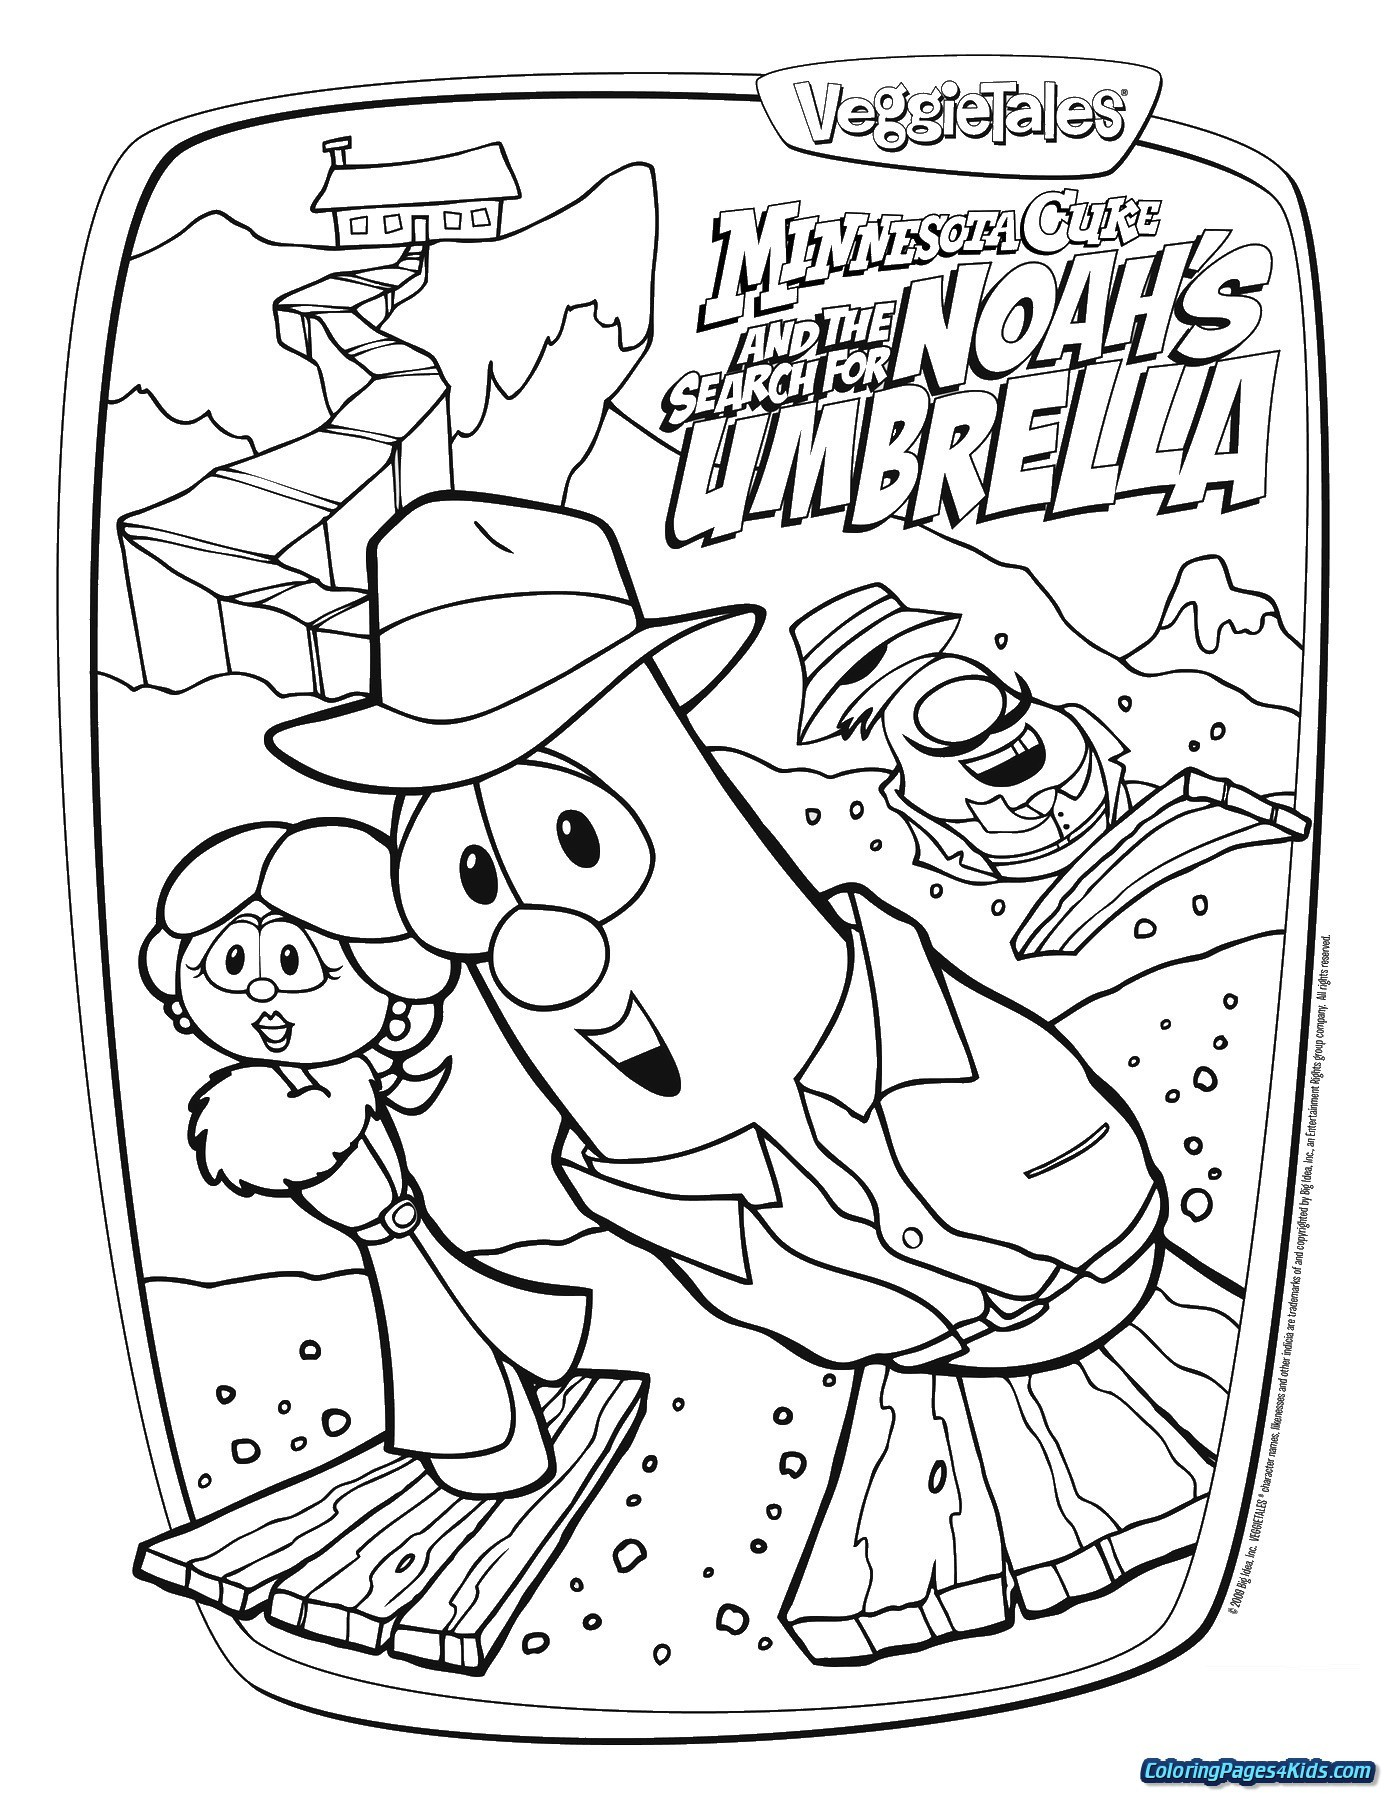 Veggie Tales Christmas Coloring Pages With Sheets New